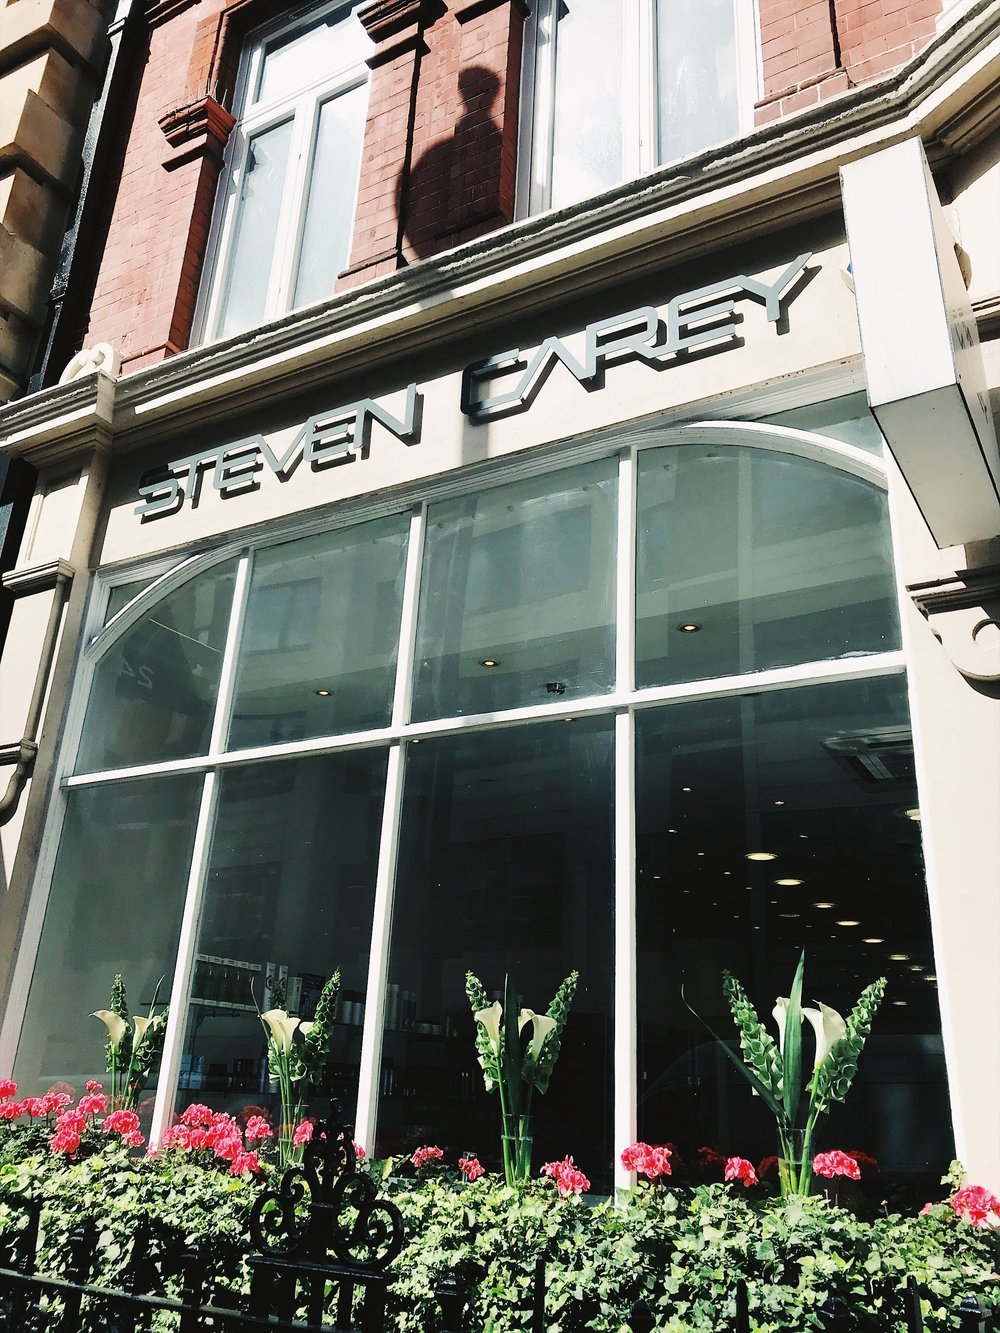 Steven Carey Hair, Mayfair